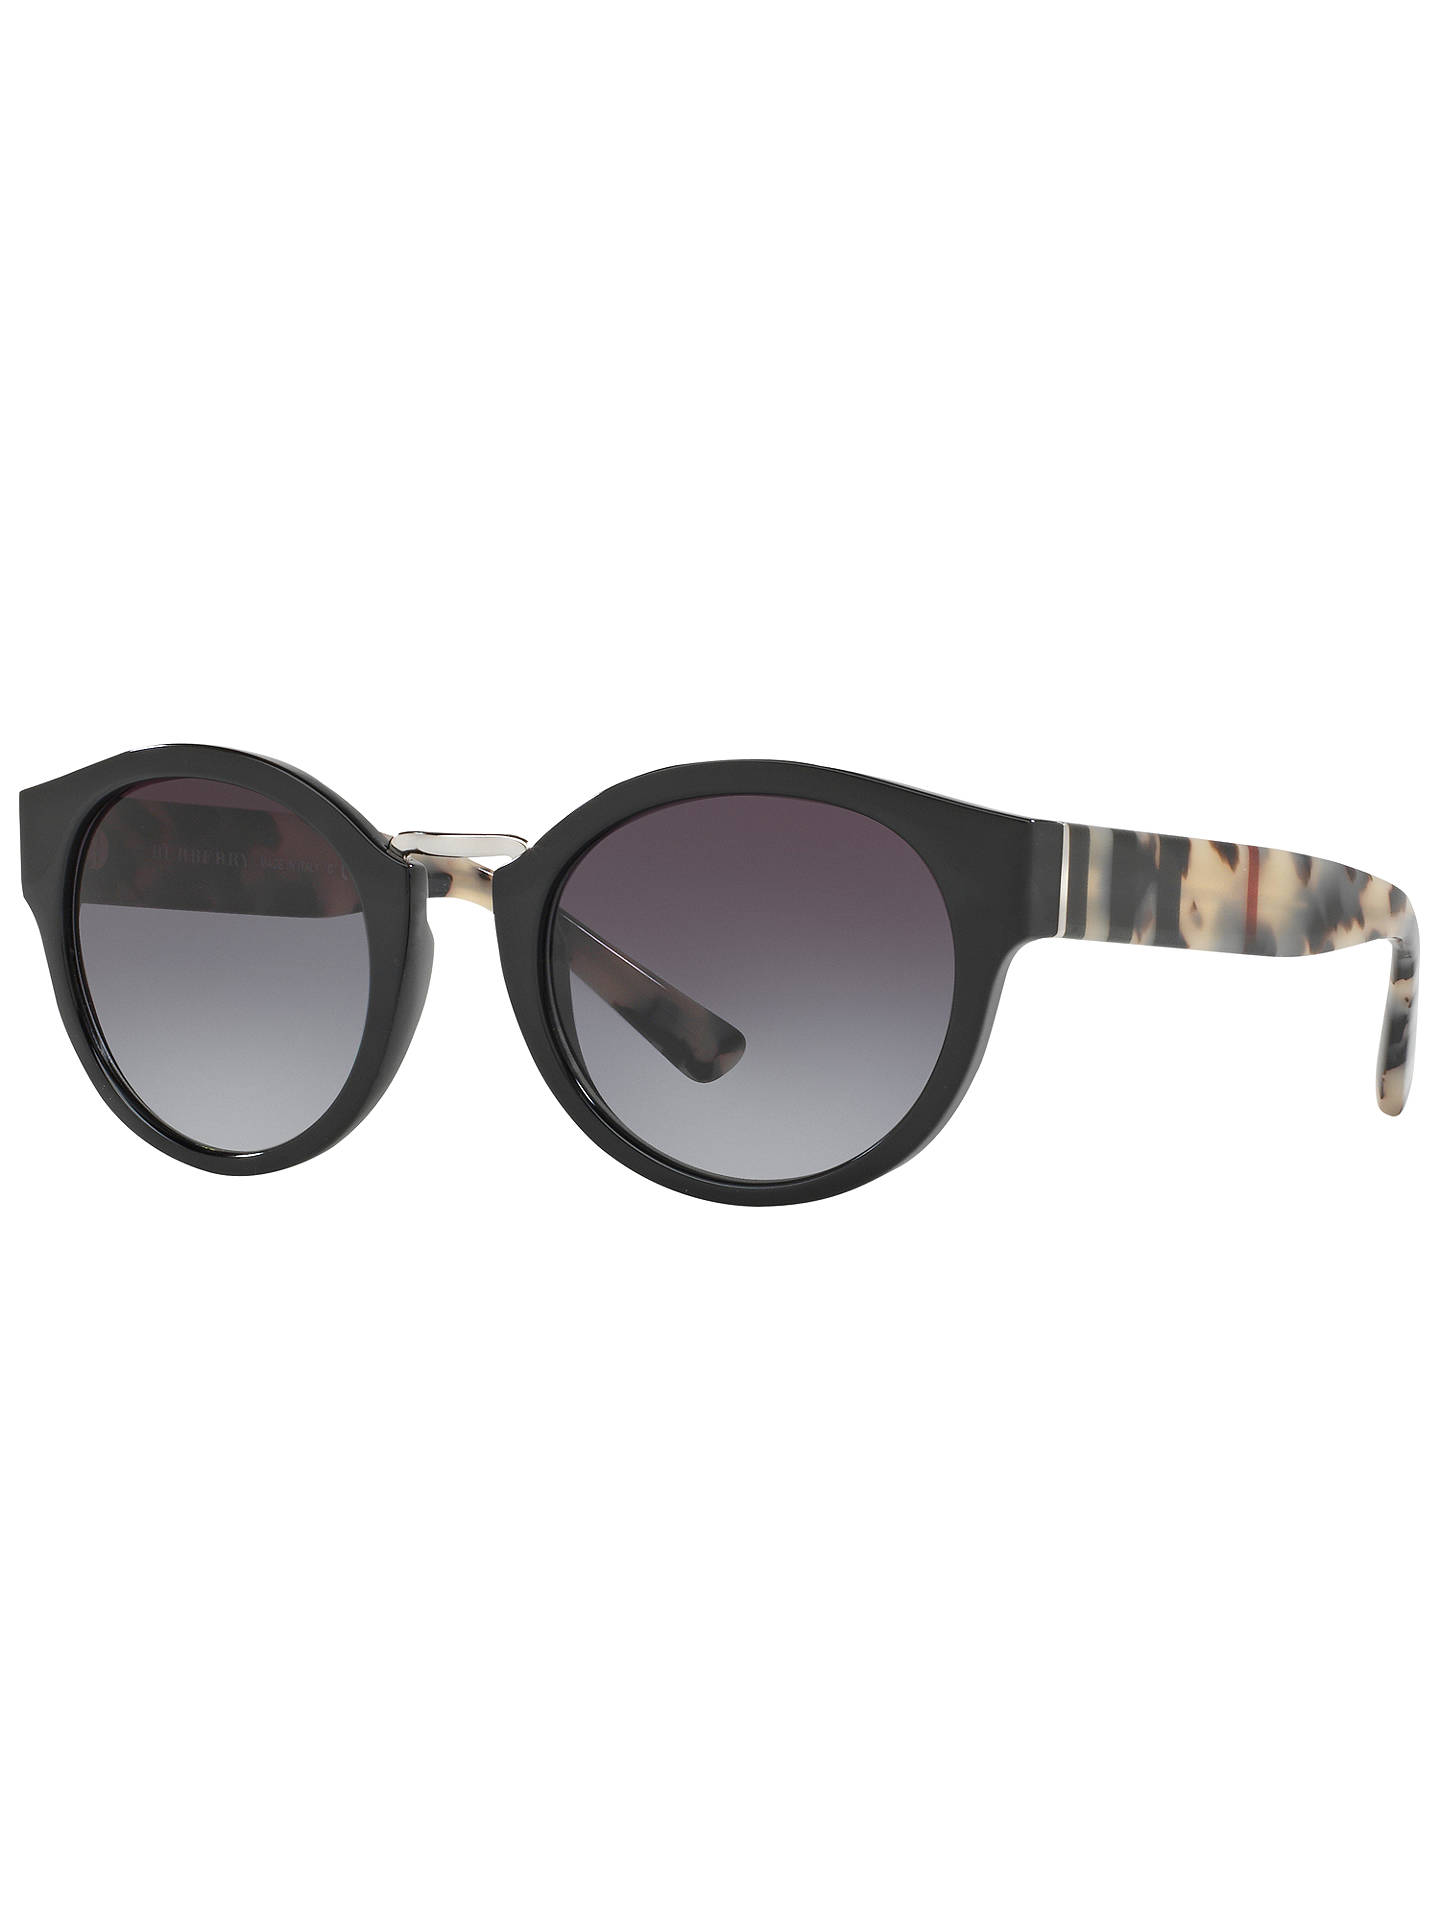 527a377f0f9 Buy Burberry BE4227 Oval Sunglasses Online at johnlewis.com ...